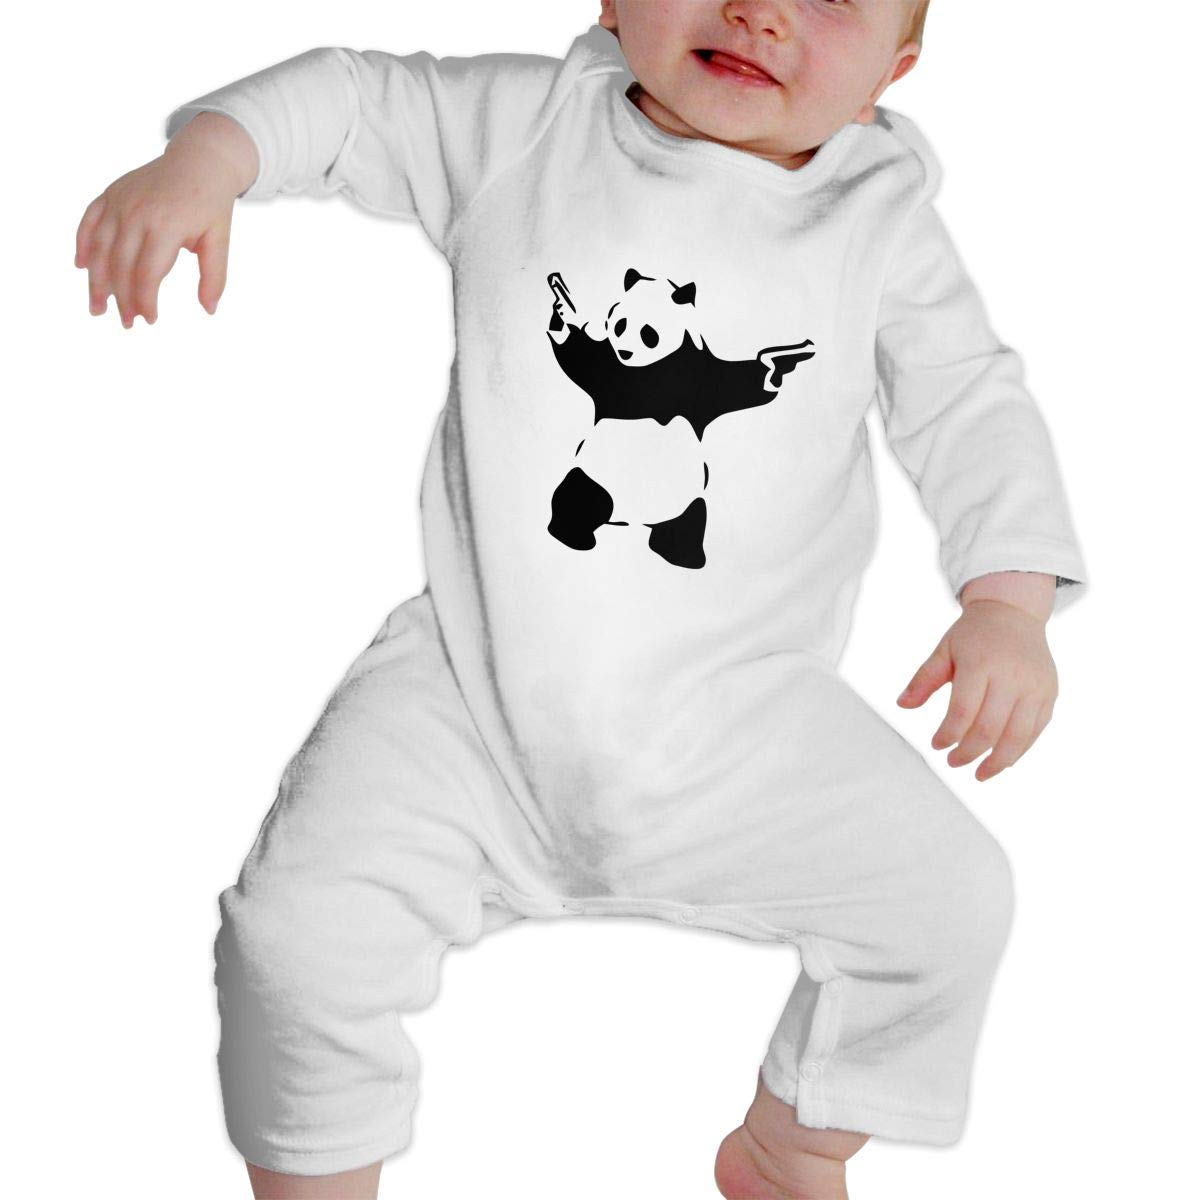 KAYERDELLE Banksy Panda Long Sleeve Unisex Baby Bodysuits for 6-24 Months Toddler